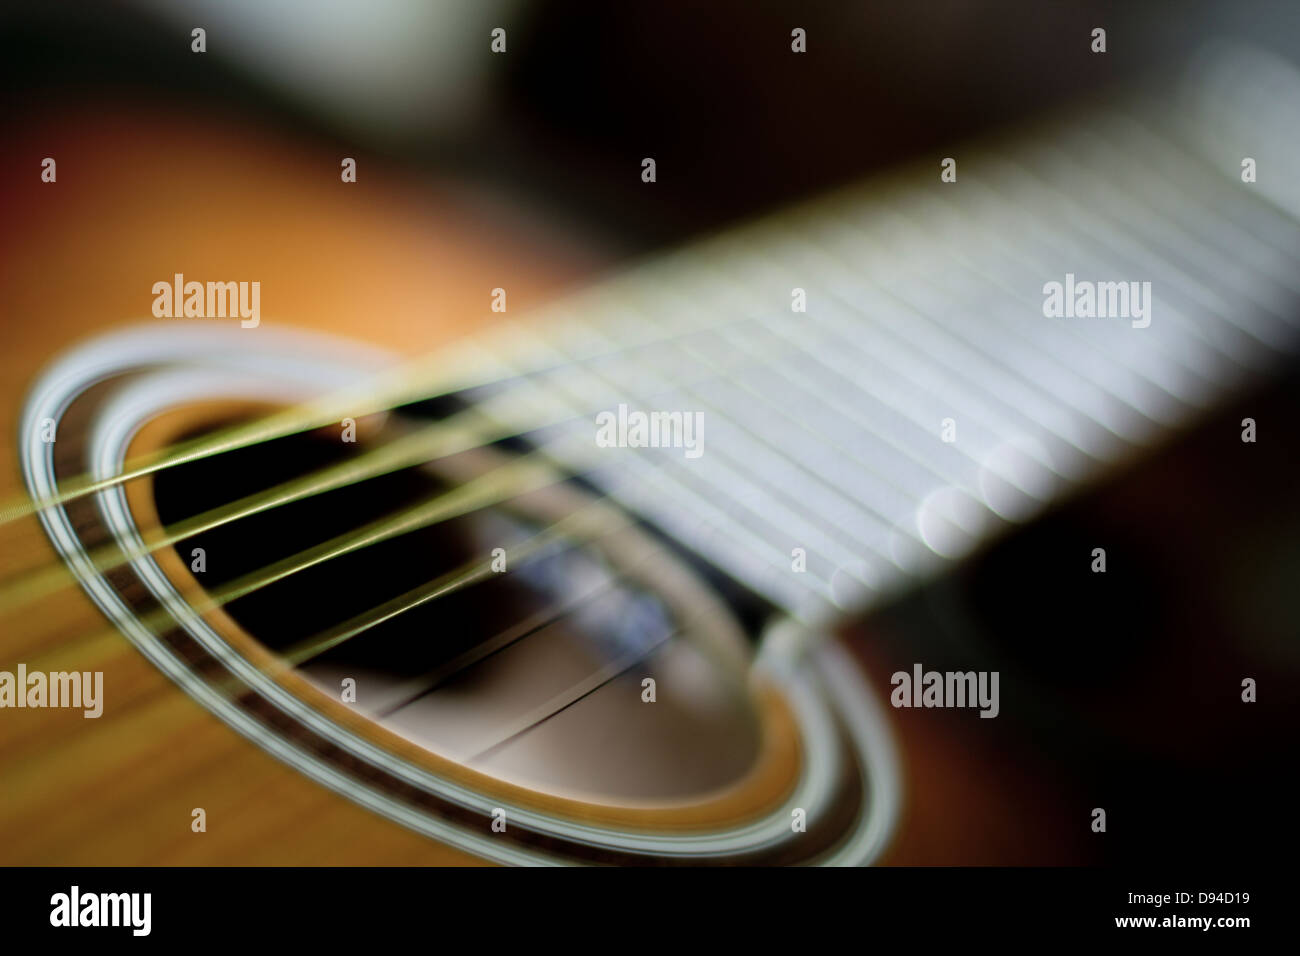 Acoustic guitar. - Stock Image